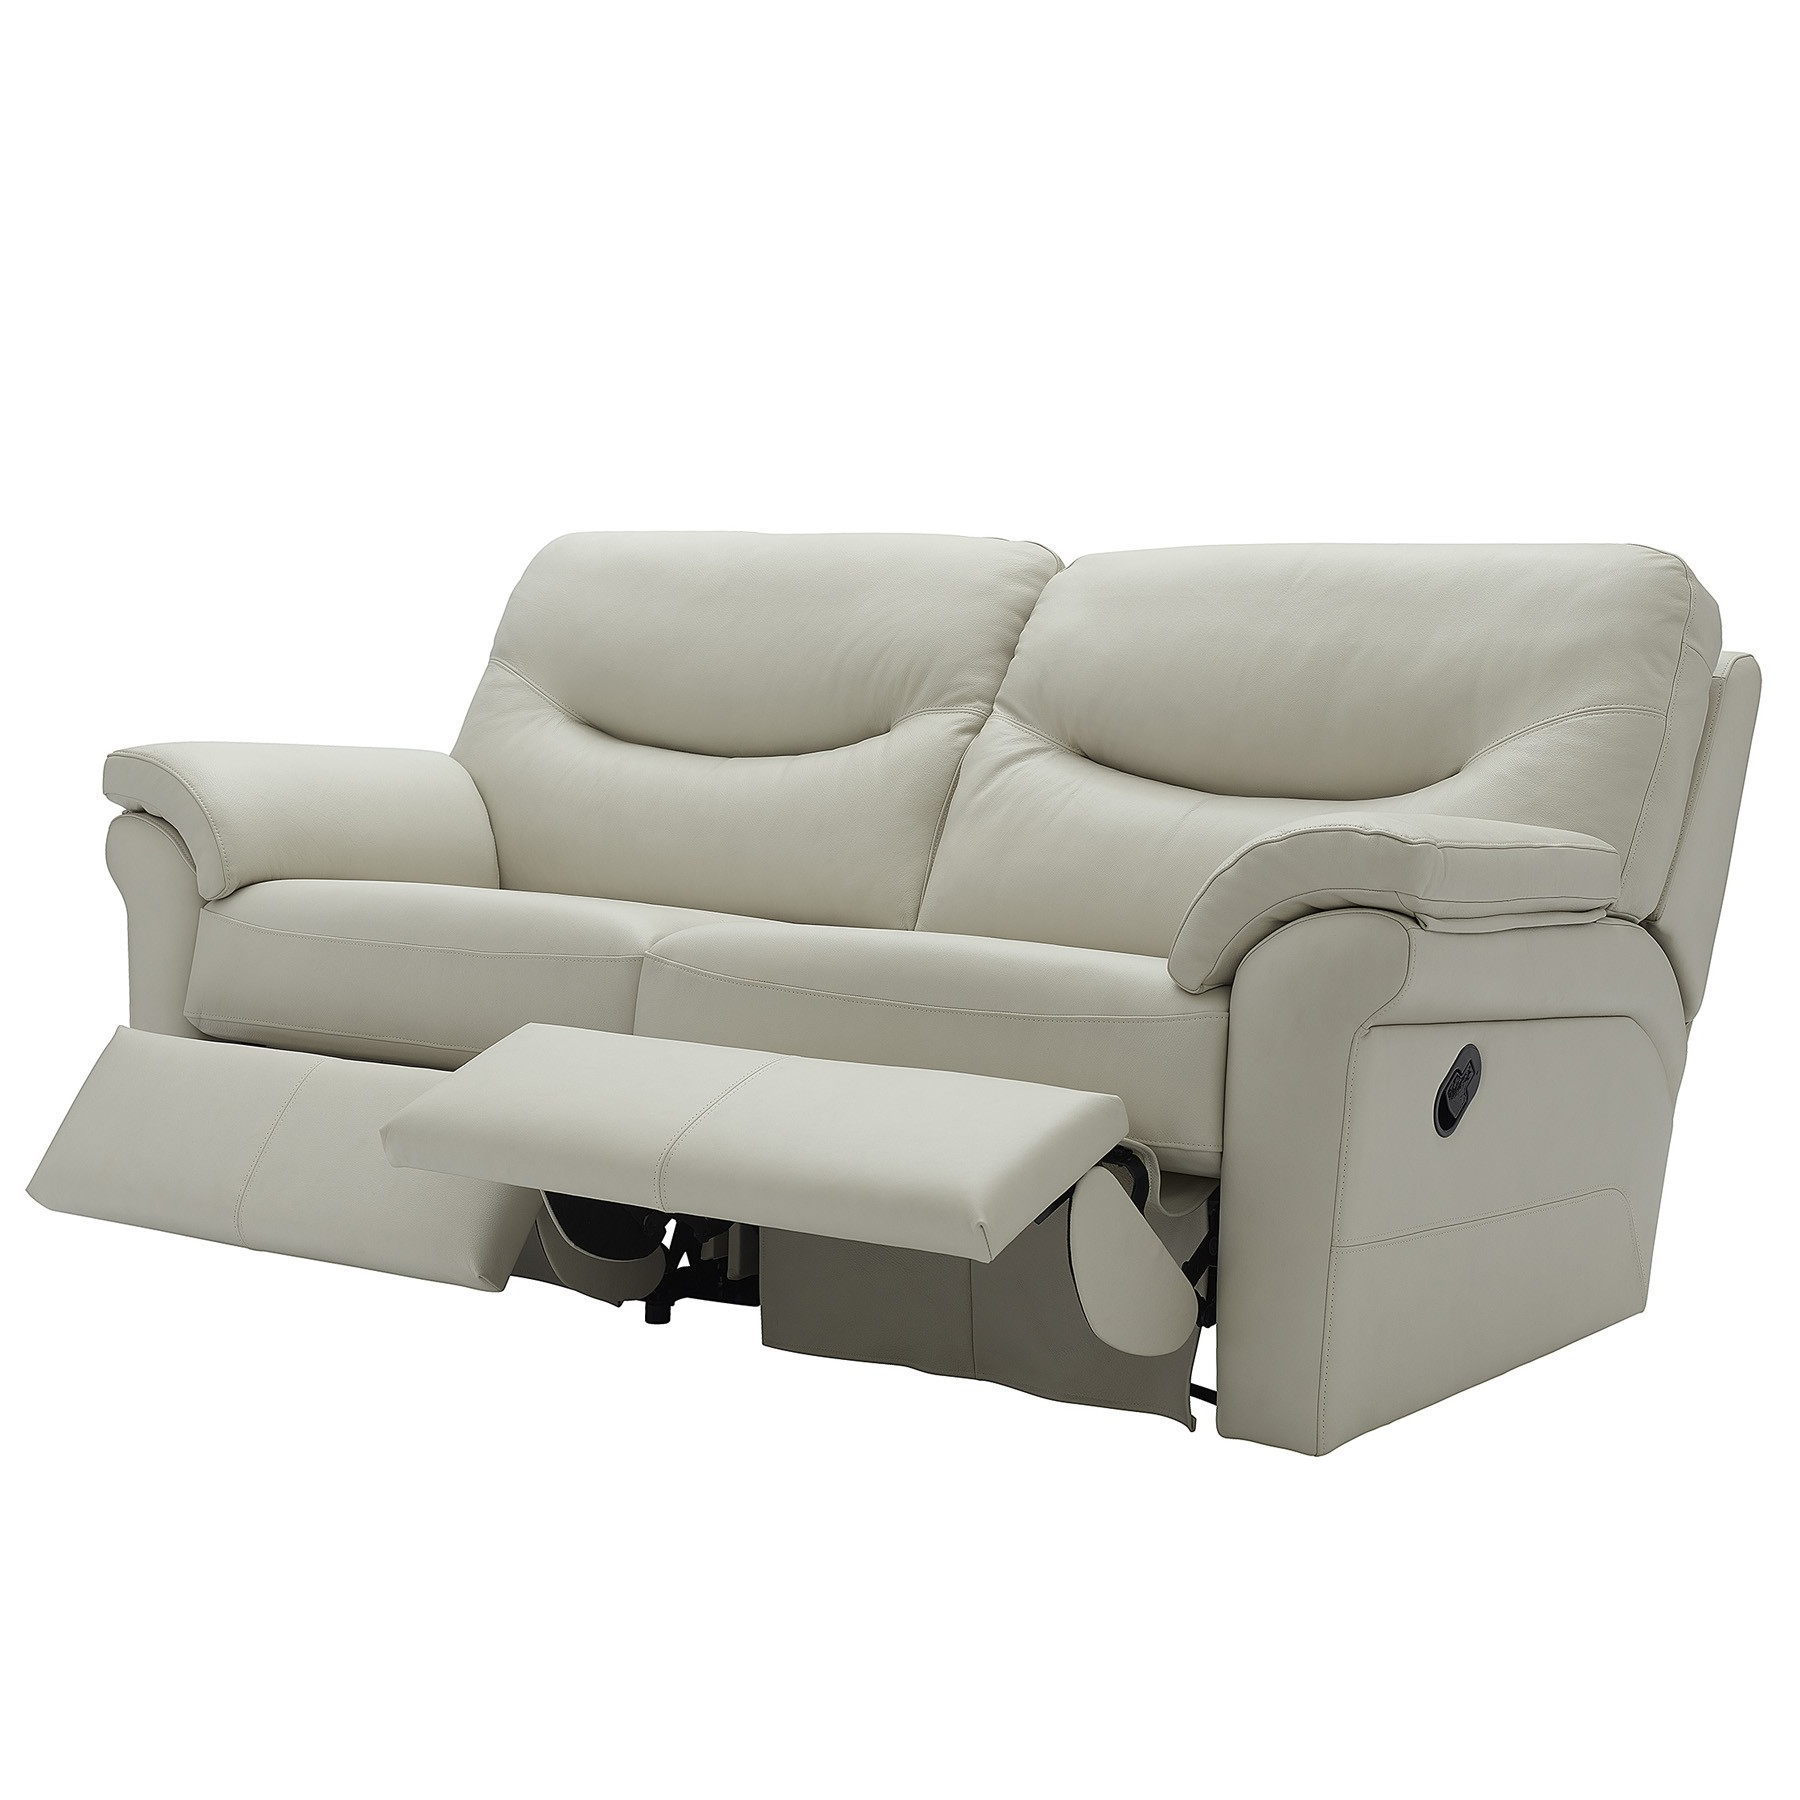 G Plan Washington Leather 3 Seater Electric Double Recliner Sofa Intended For Fashionable Recliner Sofa Chairs (View 5 of 20)